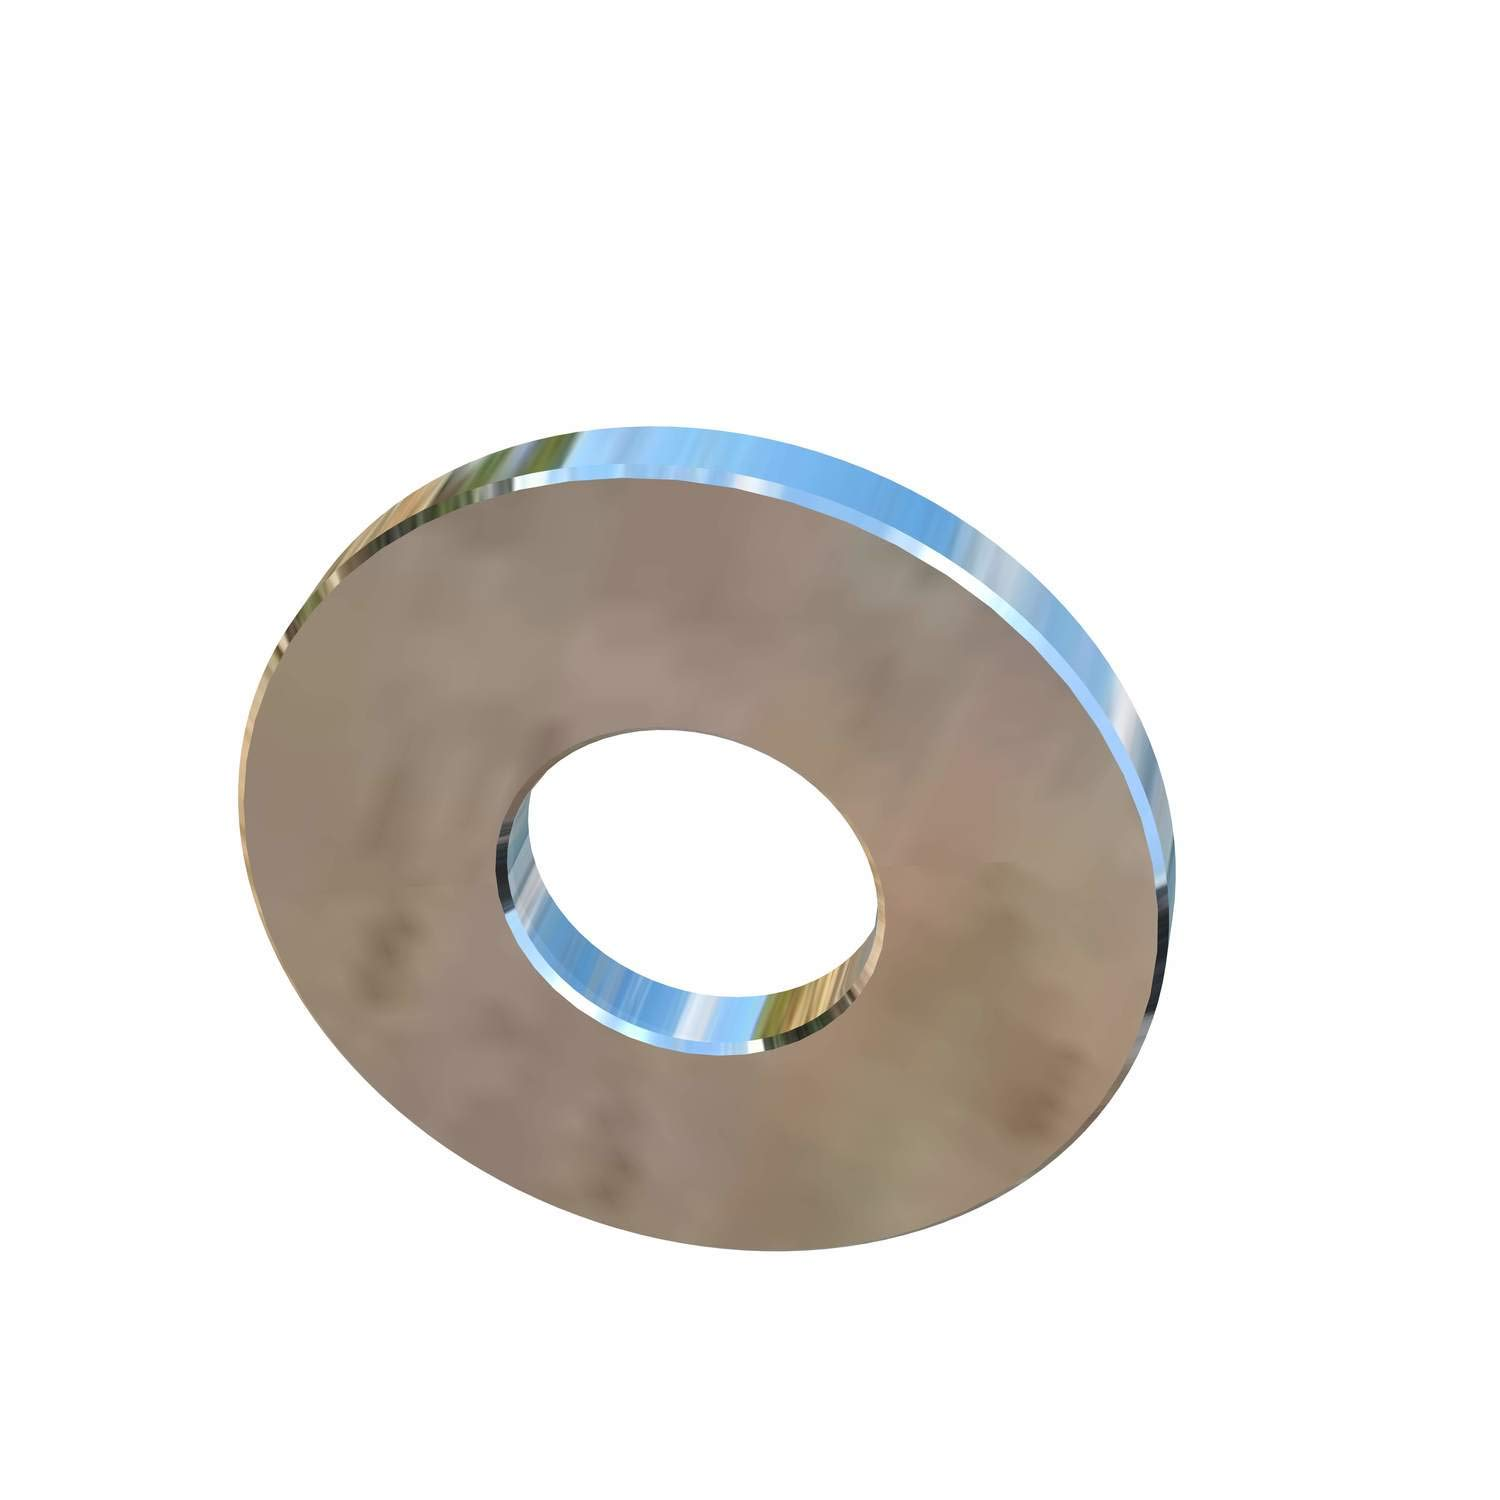 Allied Titanium 0001684, Inc Grade 2 612045001 CP #4 Flat Washer 0.032 Thick X 5//16 Inch Outside Diameter Pack of 10